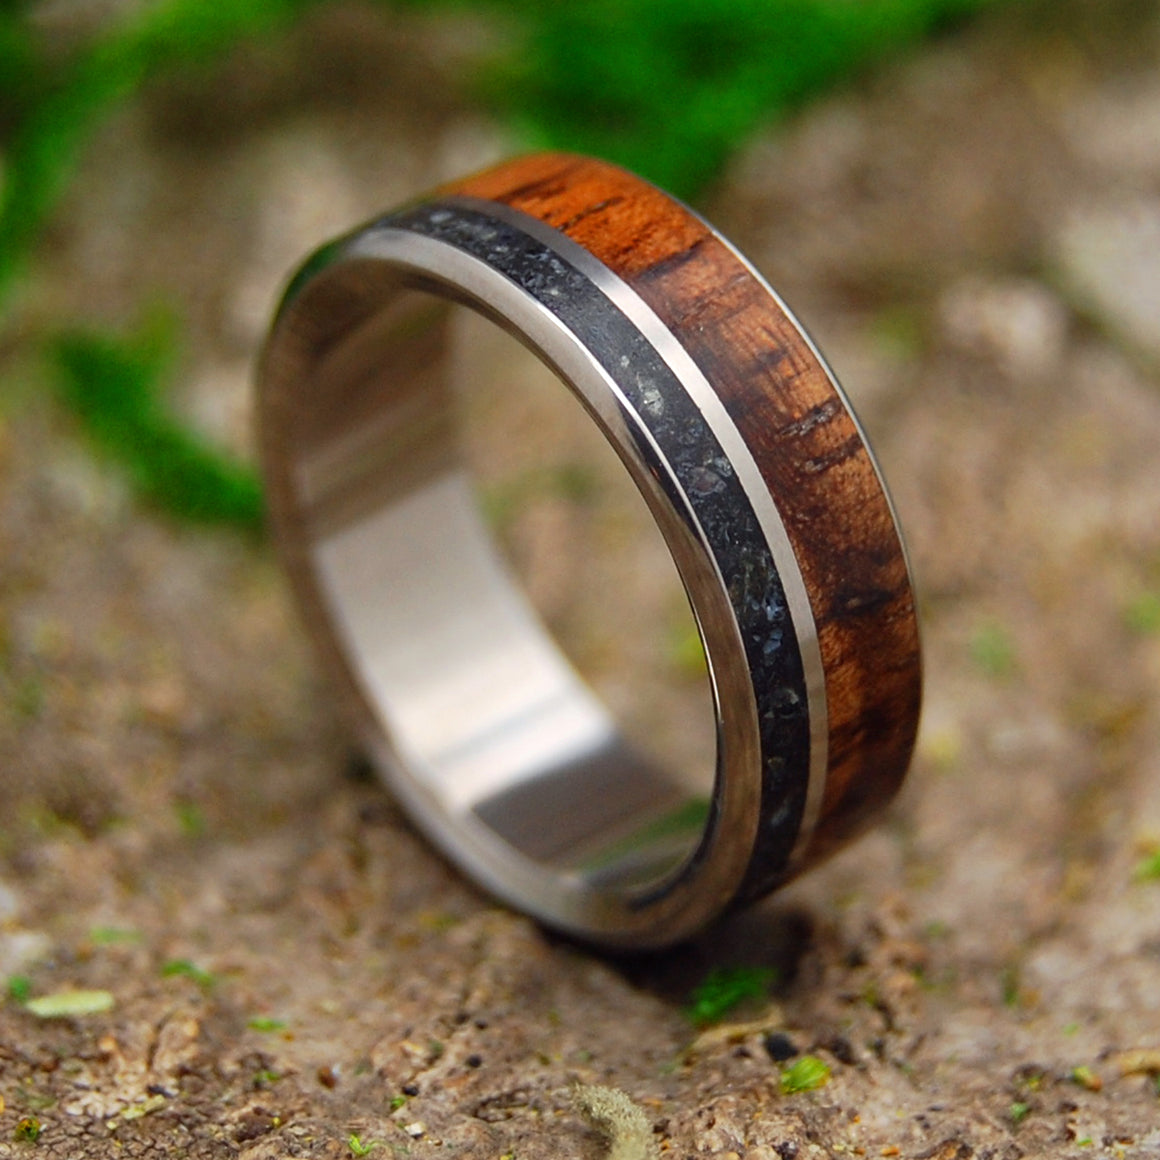 ICELANDIC NIGHT I Beach Sand and Wood Wedding Rings - Minter and Richter Designs